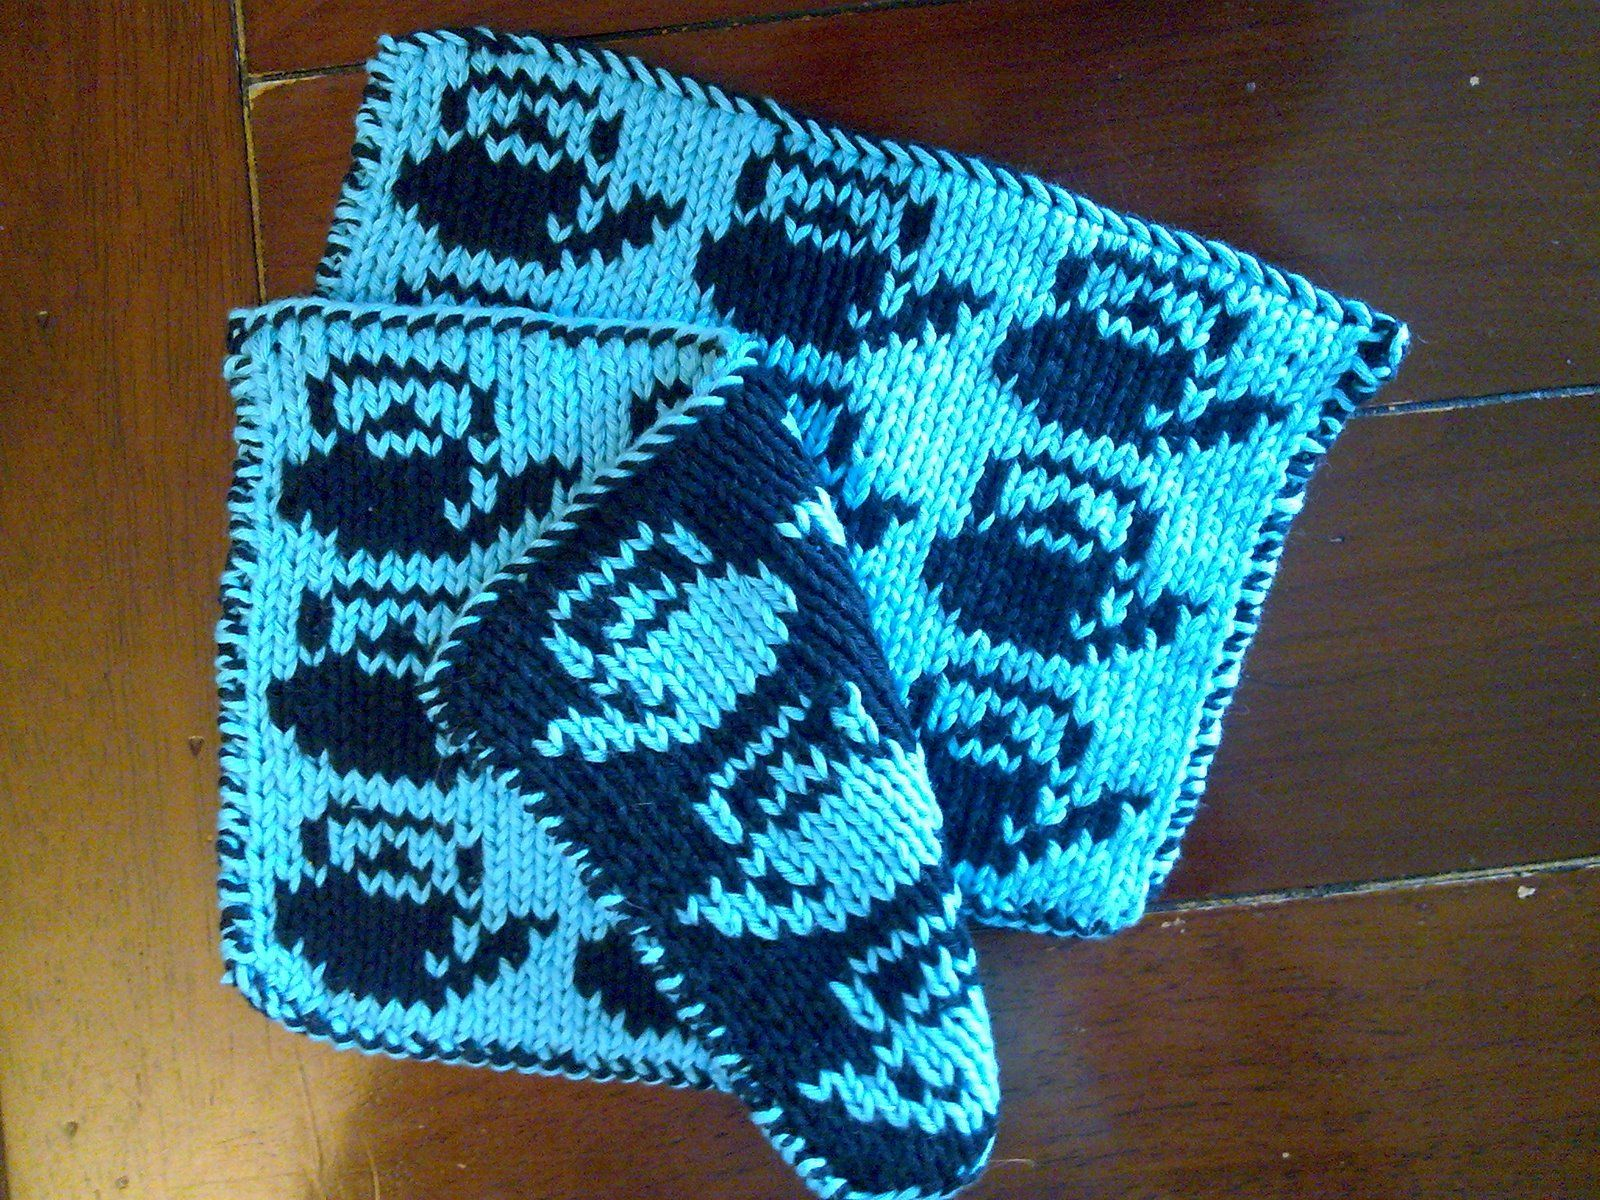 knitting patterns for potholders | tea pot double knit potholder s ...